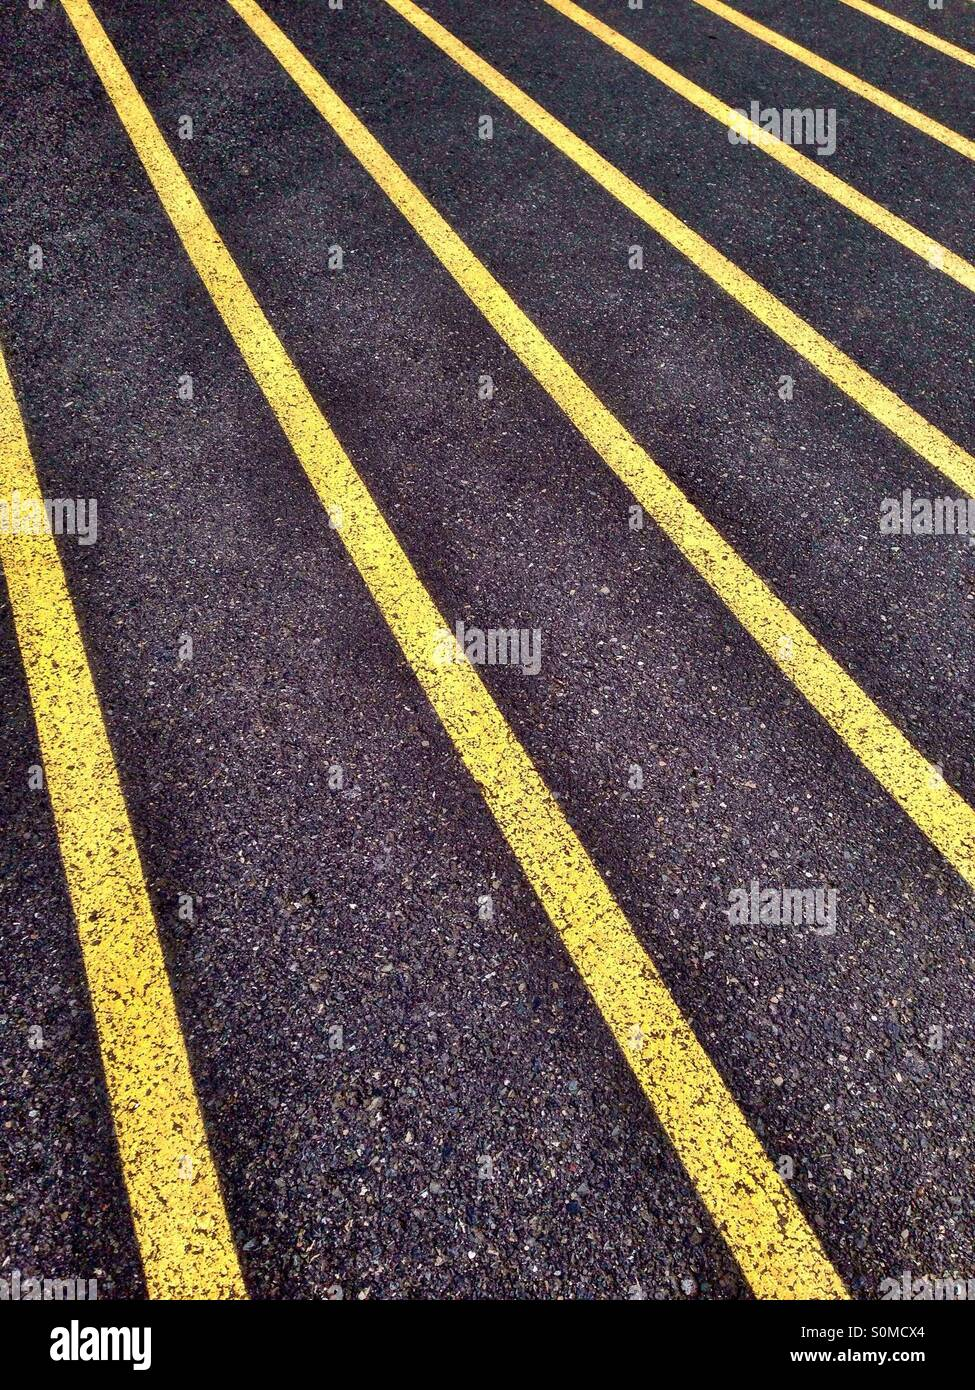 Yellow lines on athletic running track - Stock Image